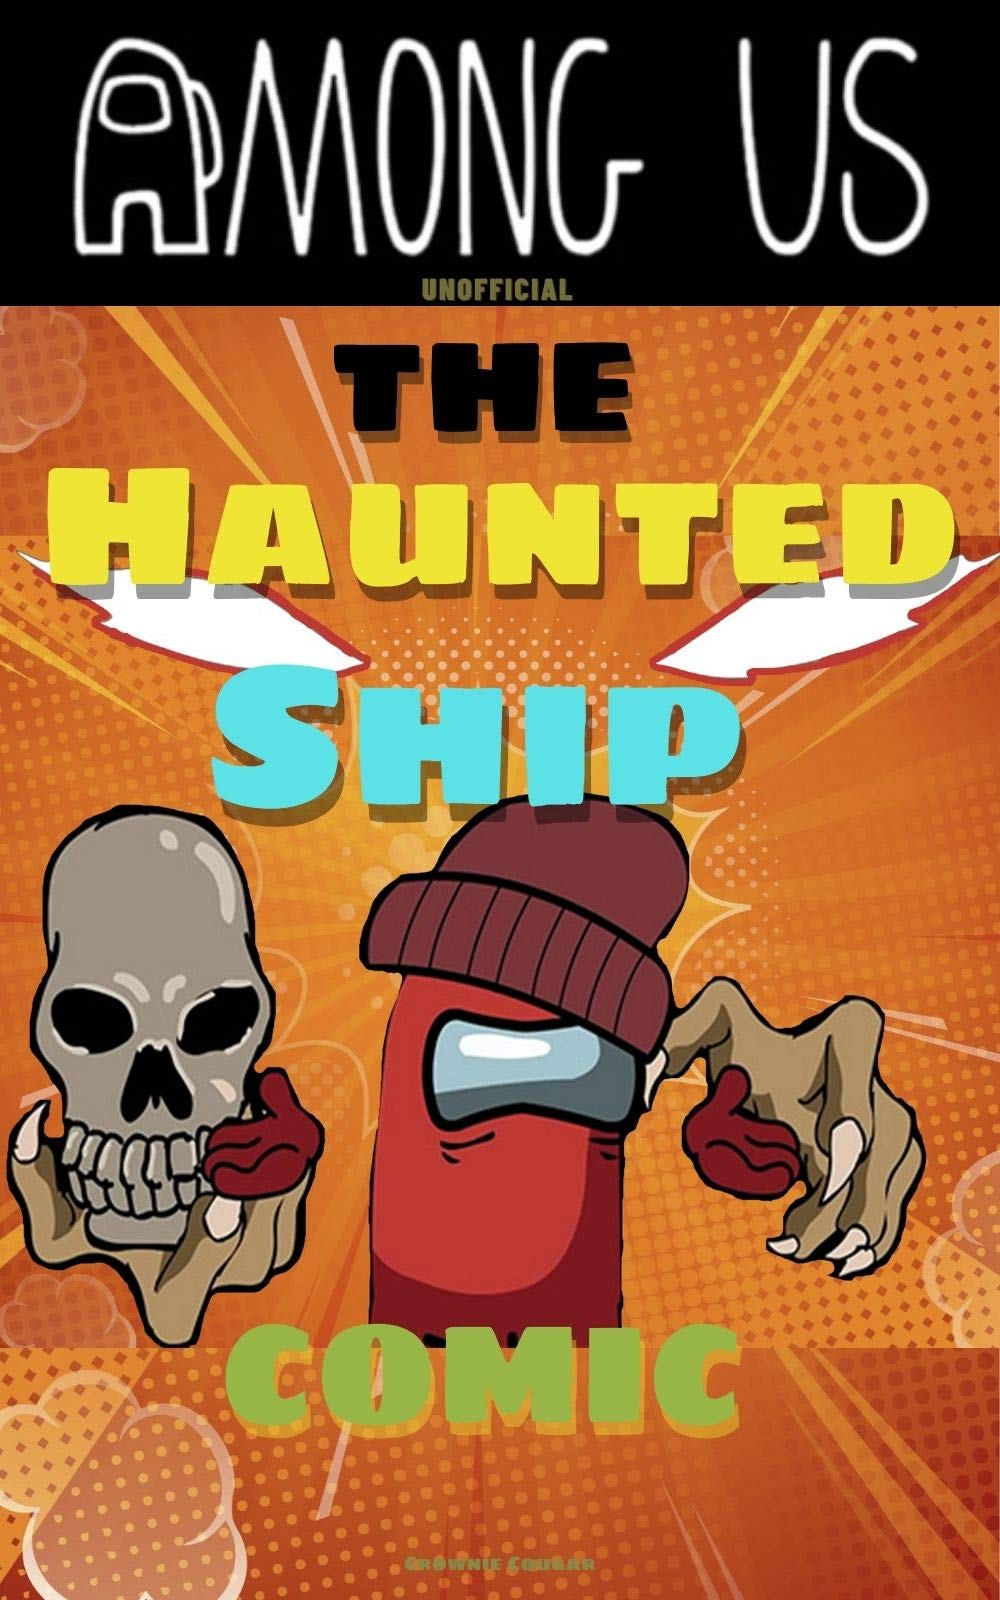 Among Us (Unofficial): The Haunted Ship Comic (Among Us Comic Book 5)